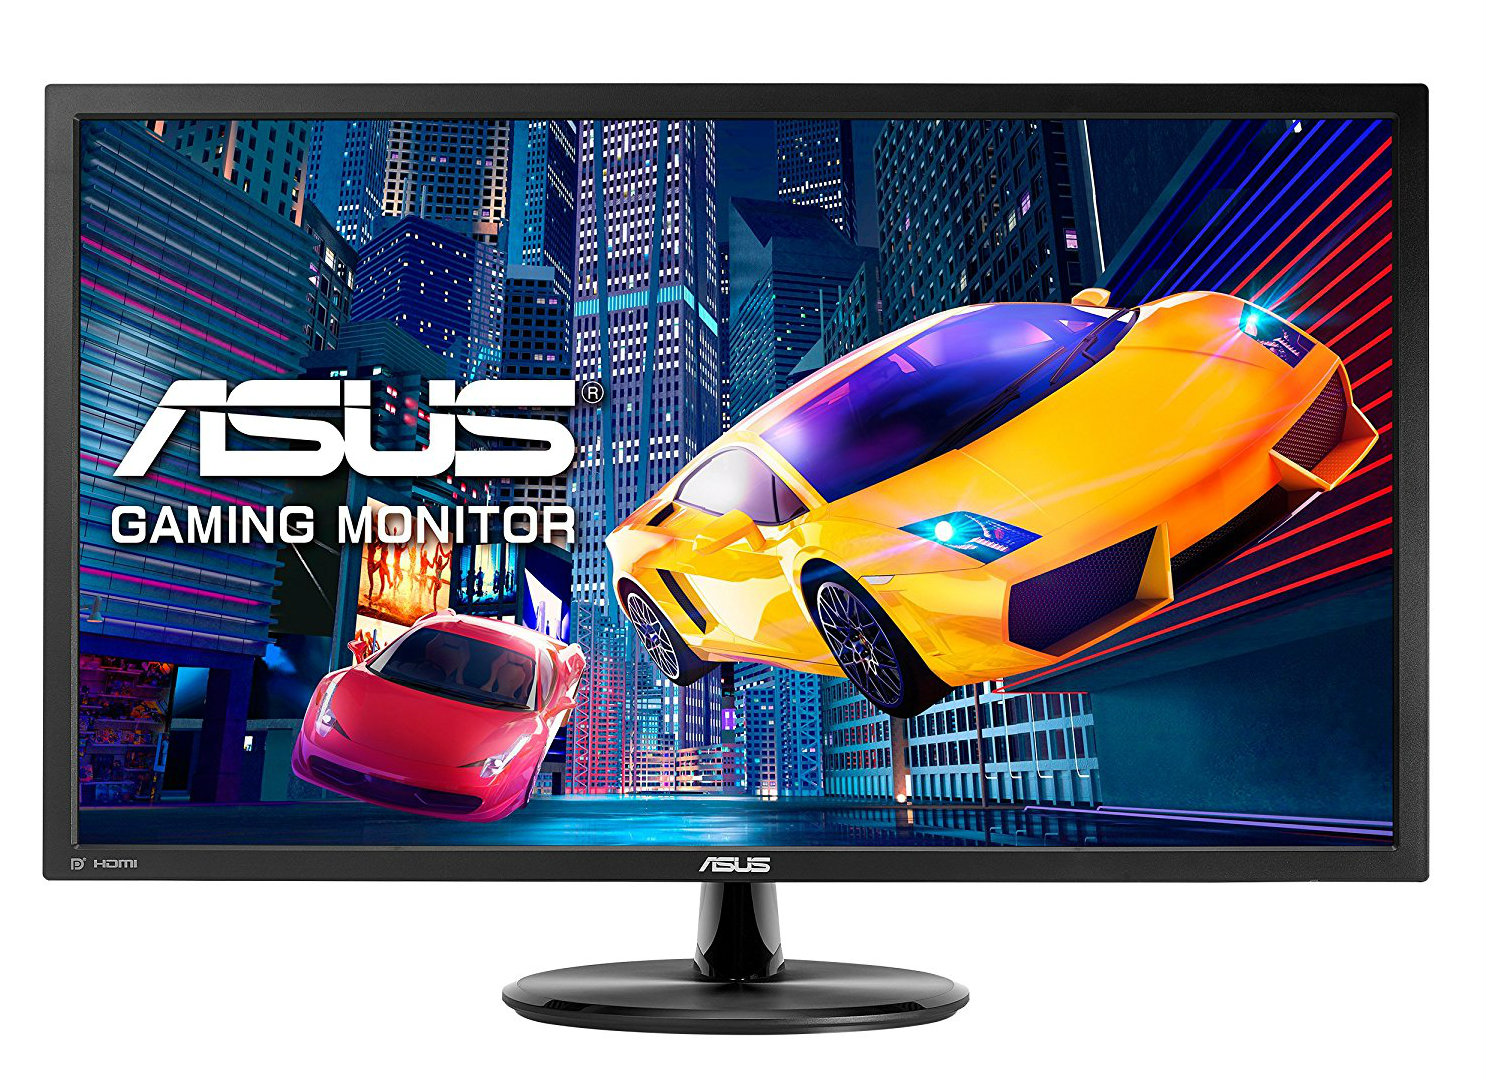 competitive 4k gaming monitor